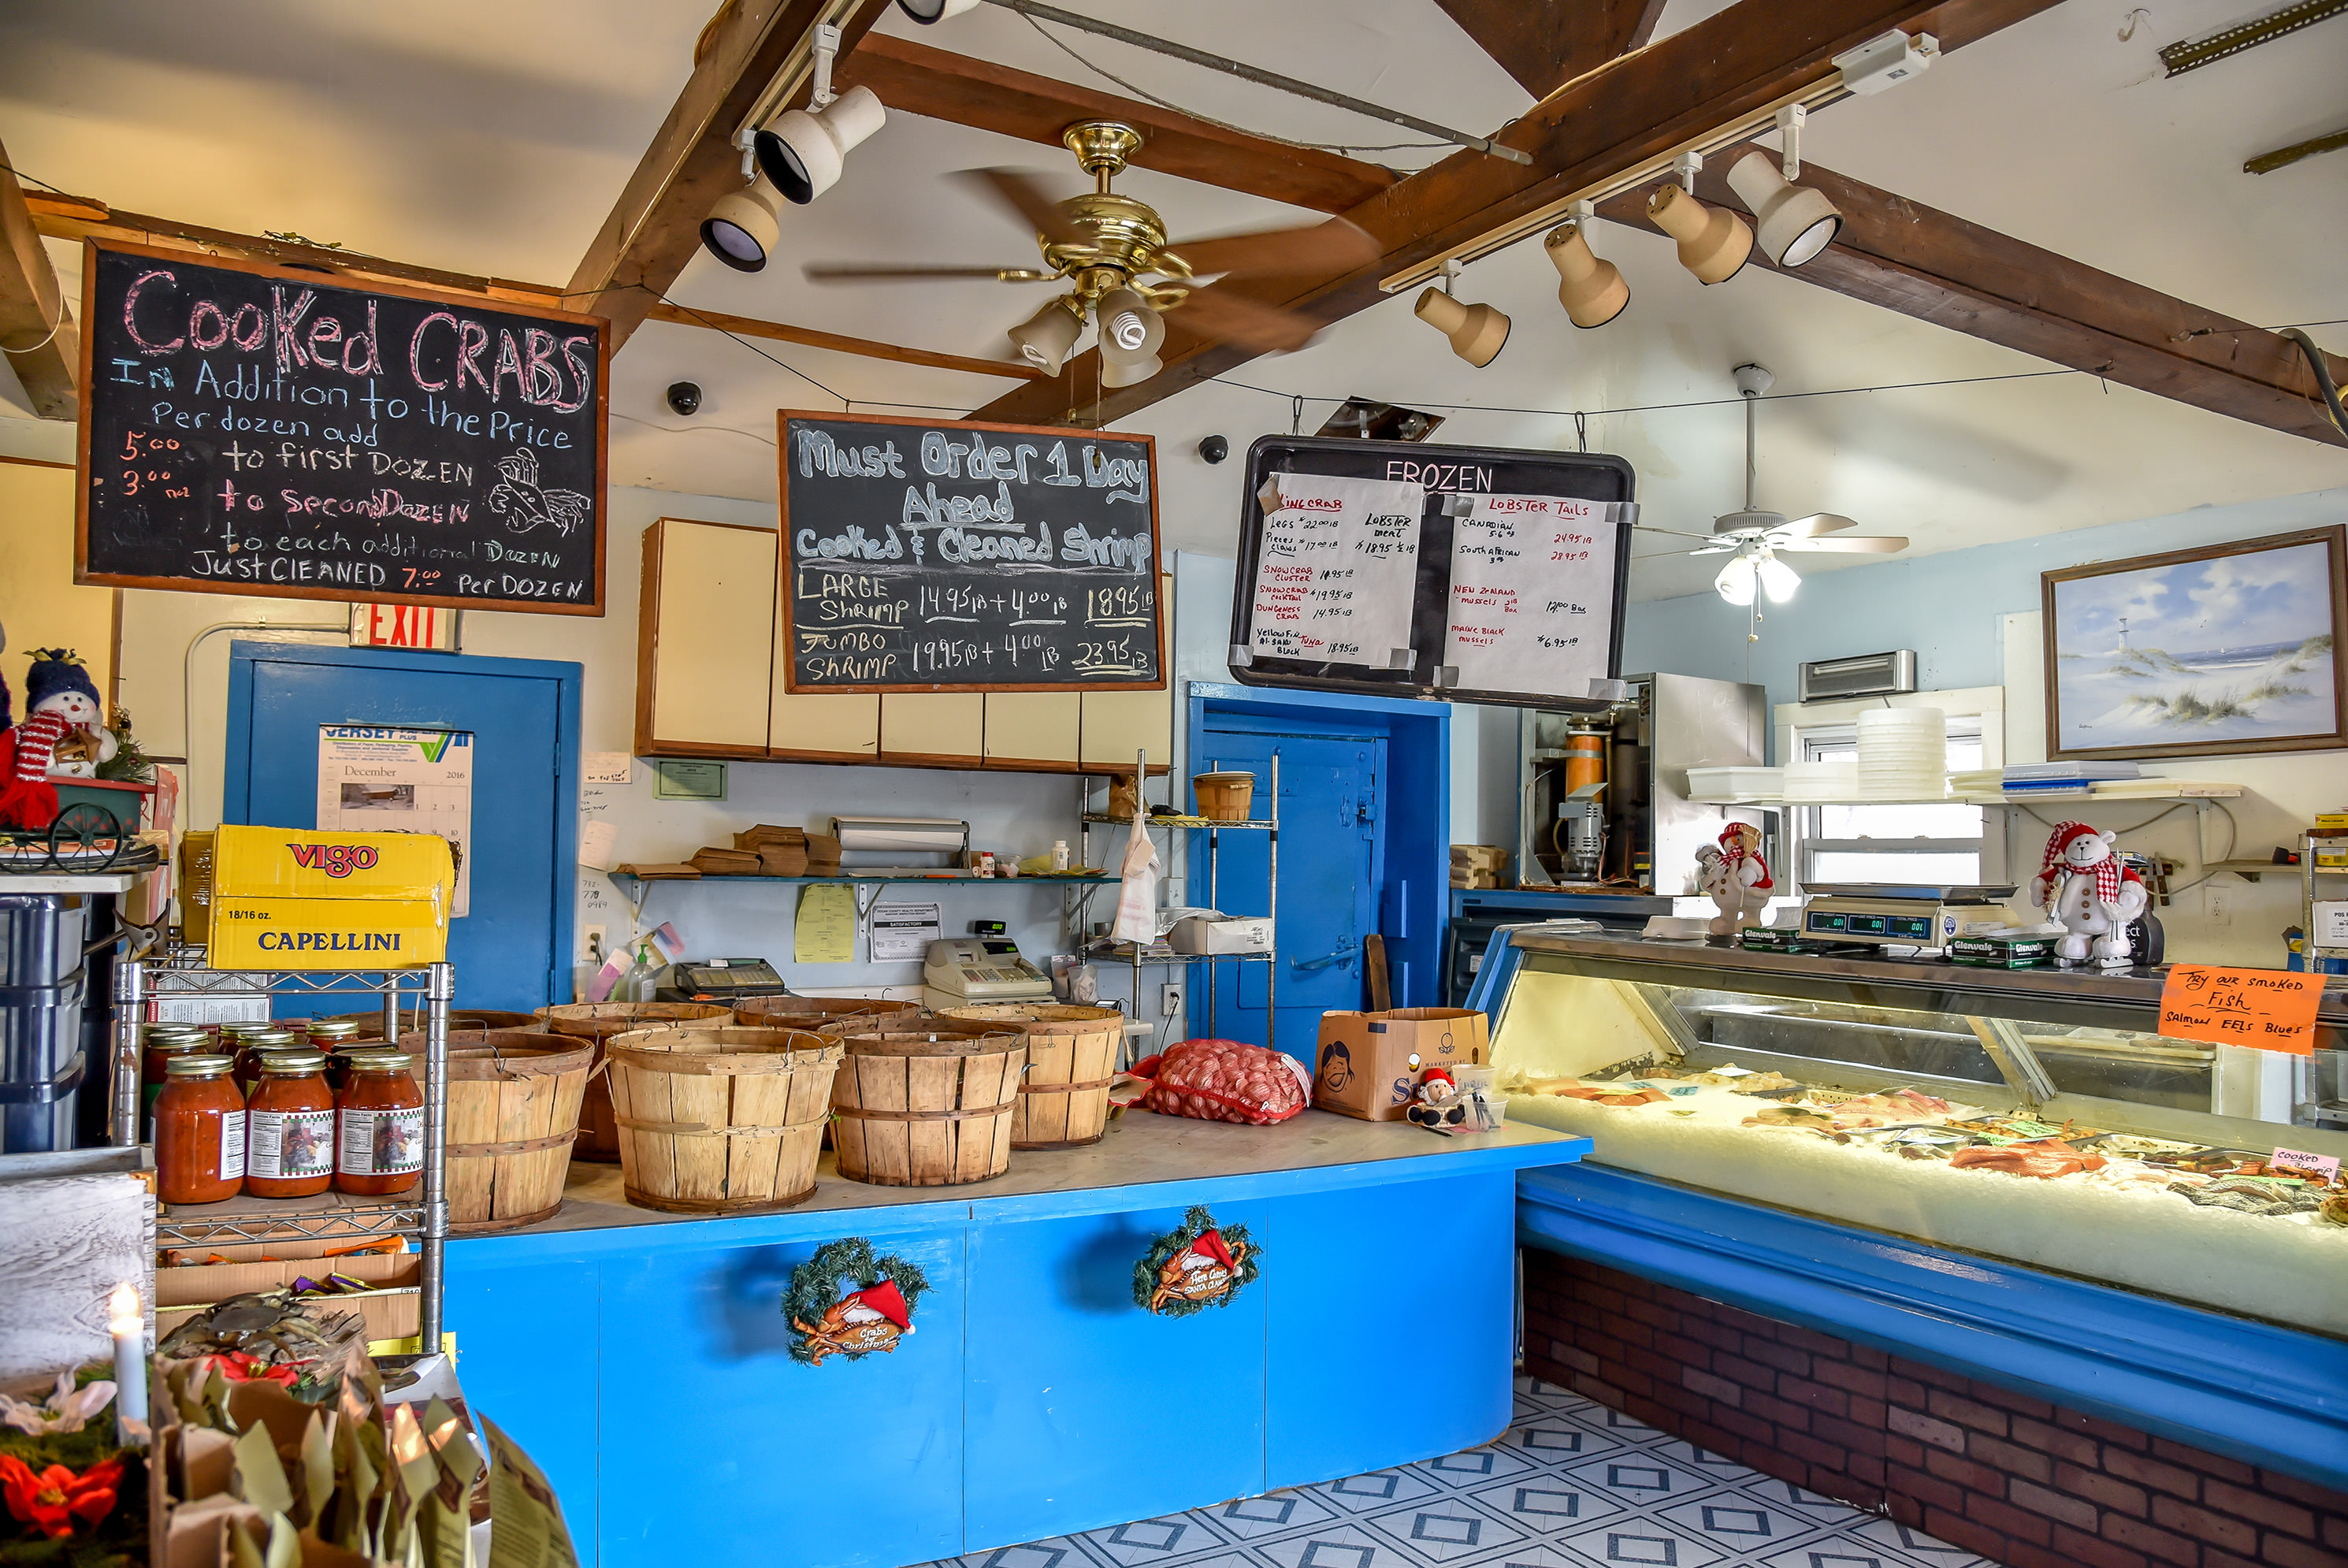 check out our selection of fresh seafood in addition to our cooked seafood